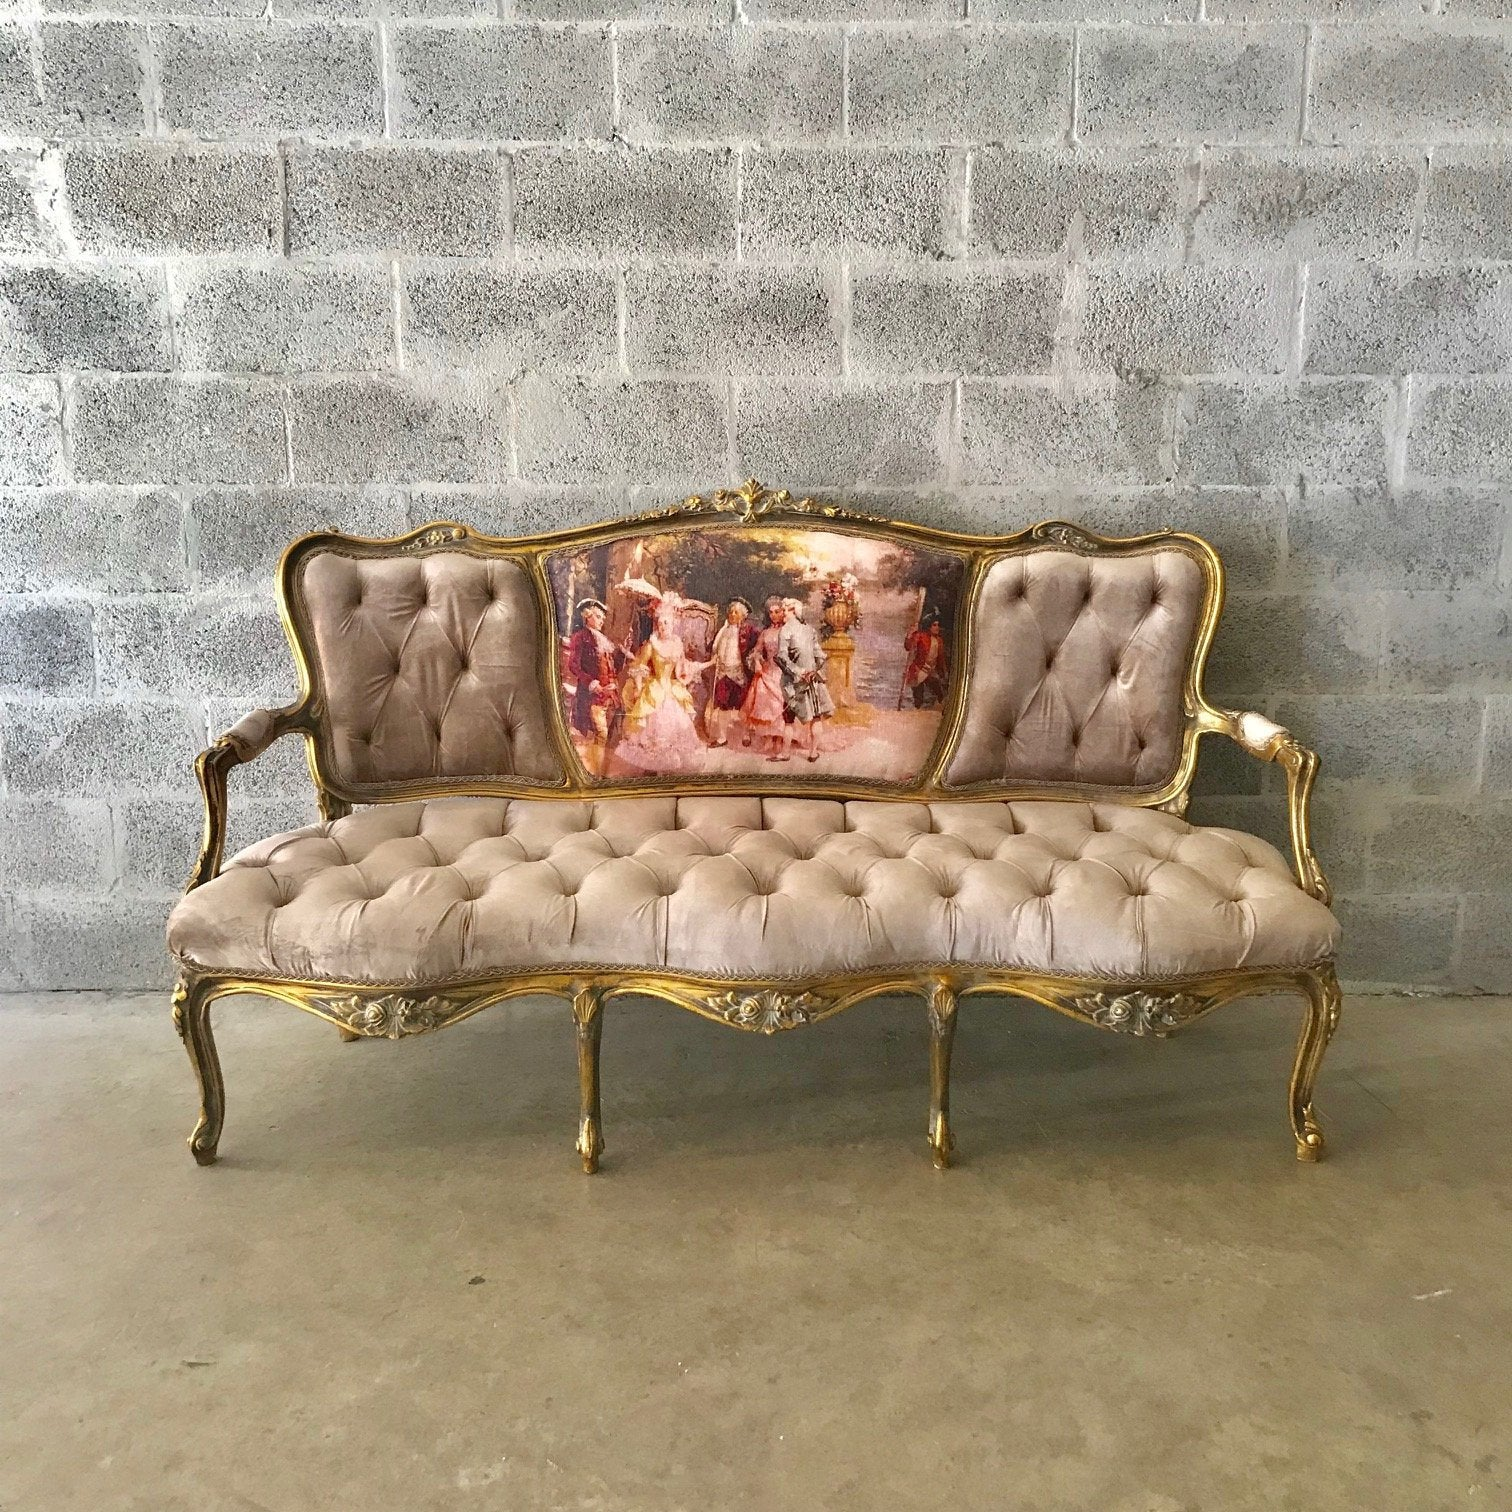 French Furniture French Settee Vintage Sofa Antique Furniture New Upho